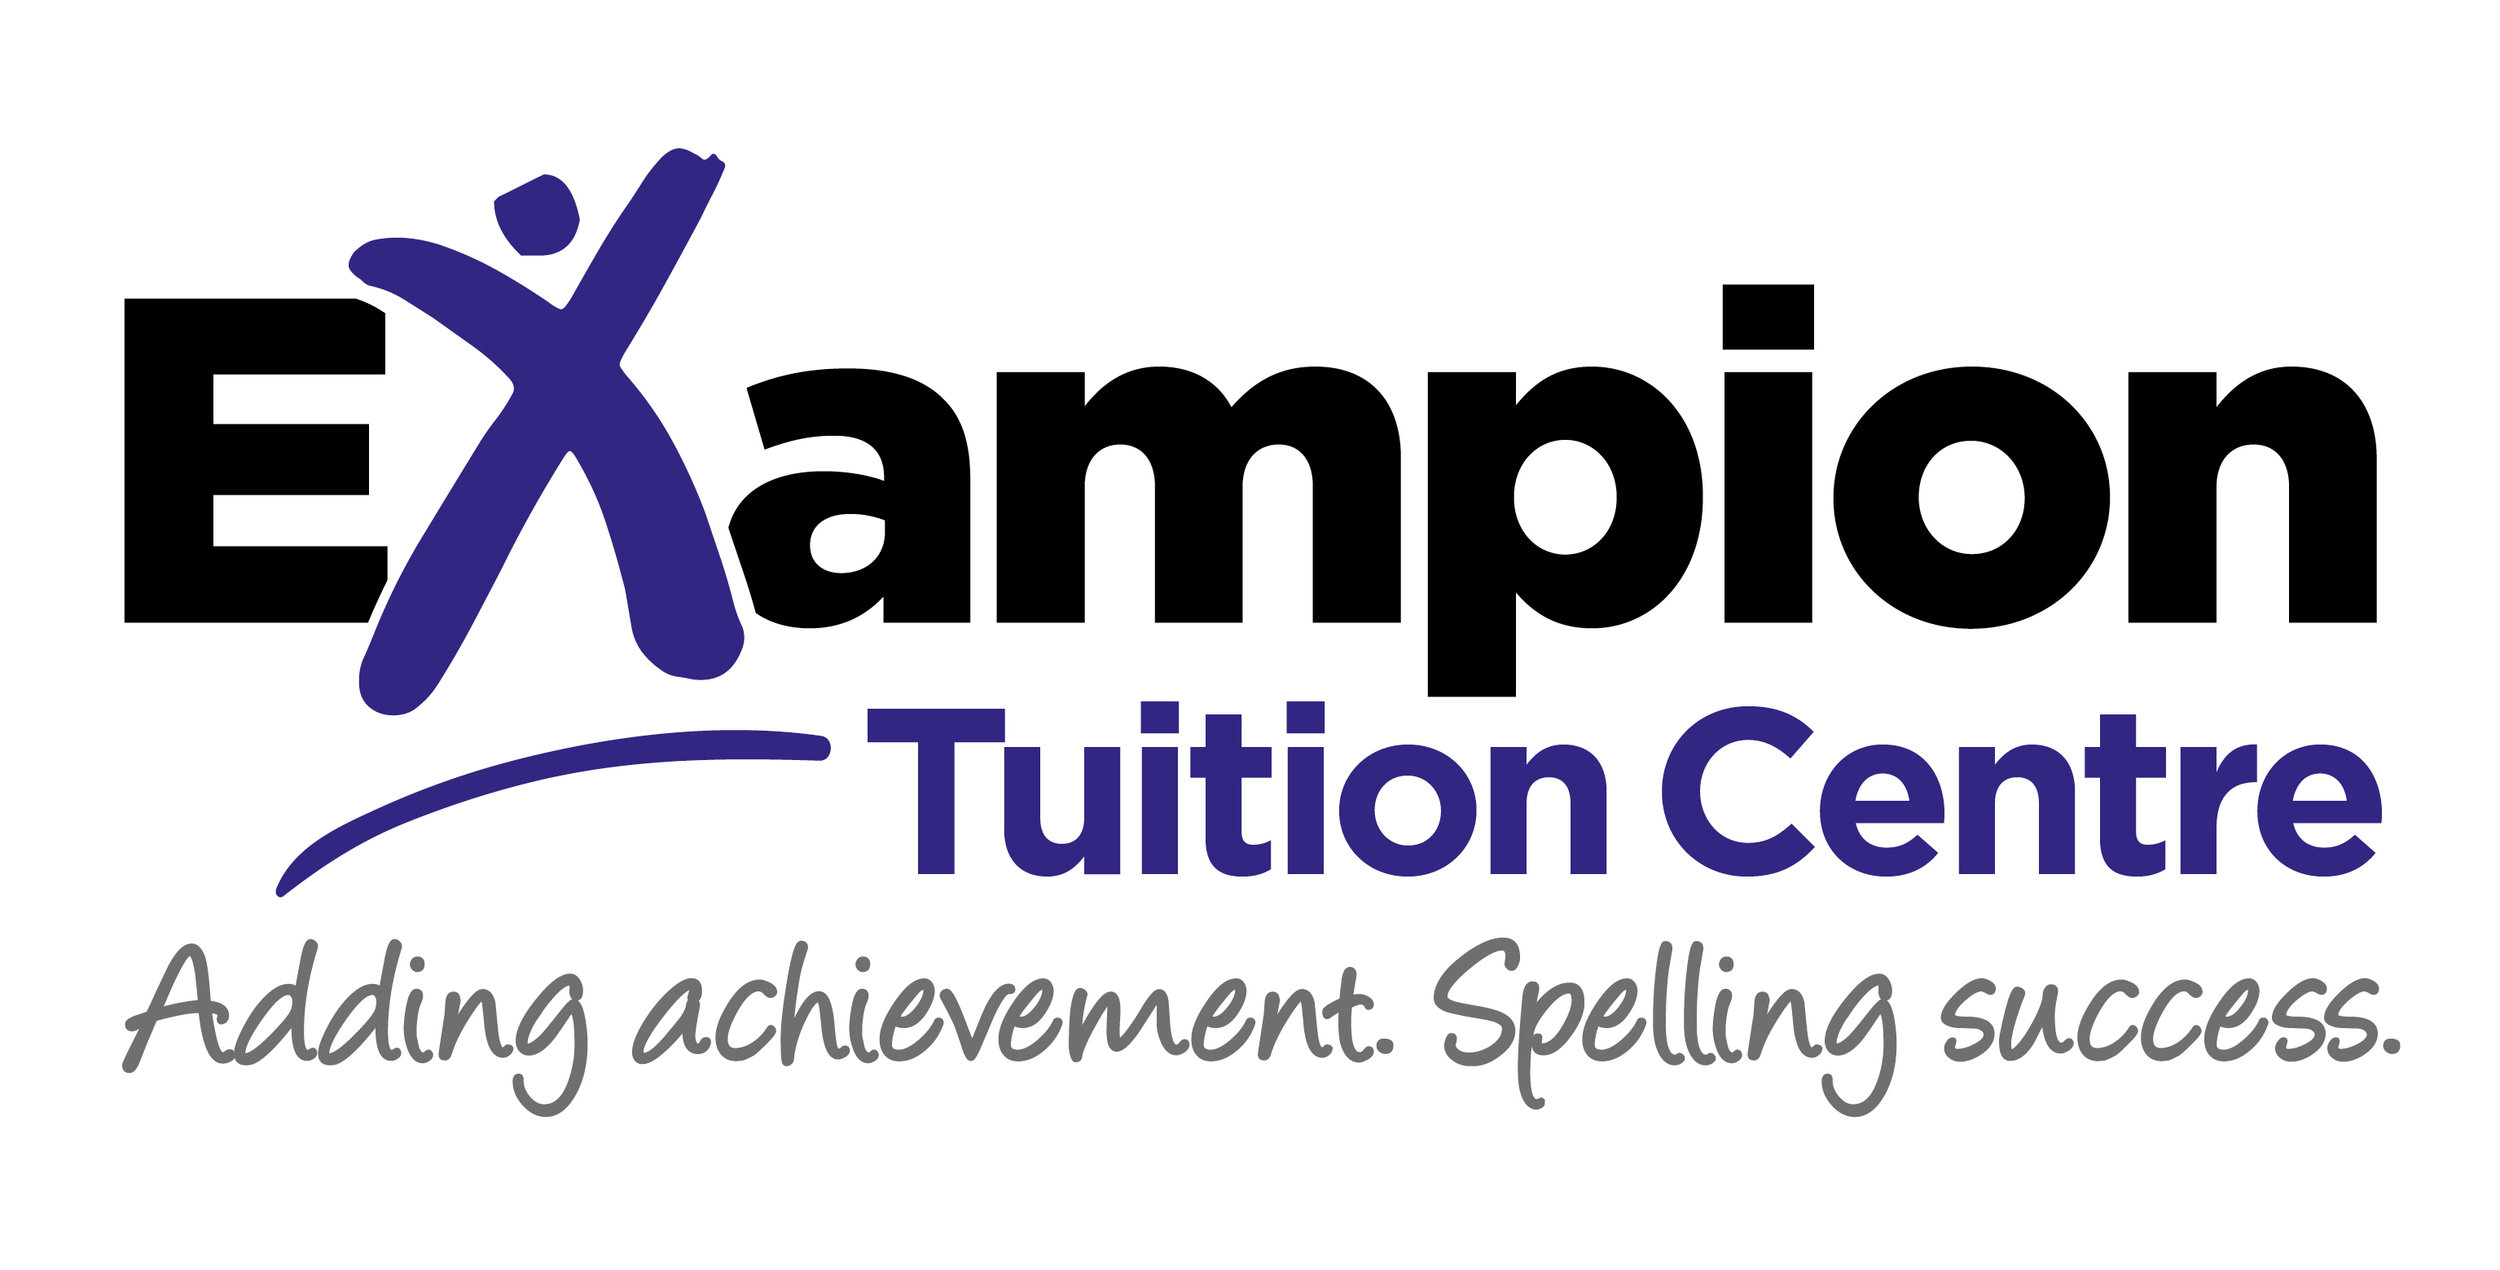 The new logo incorporates a jubilant 'X' character to represent the joy of achievement and positivity that Exampion aims to build in its students.